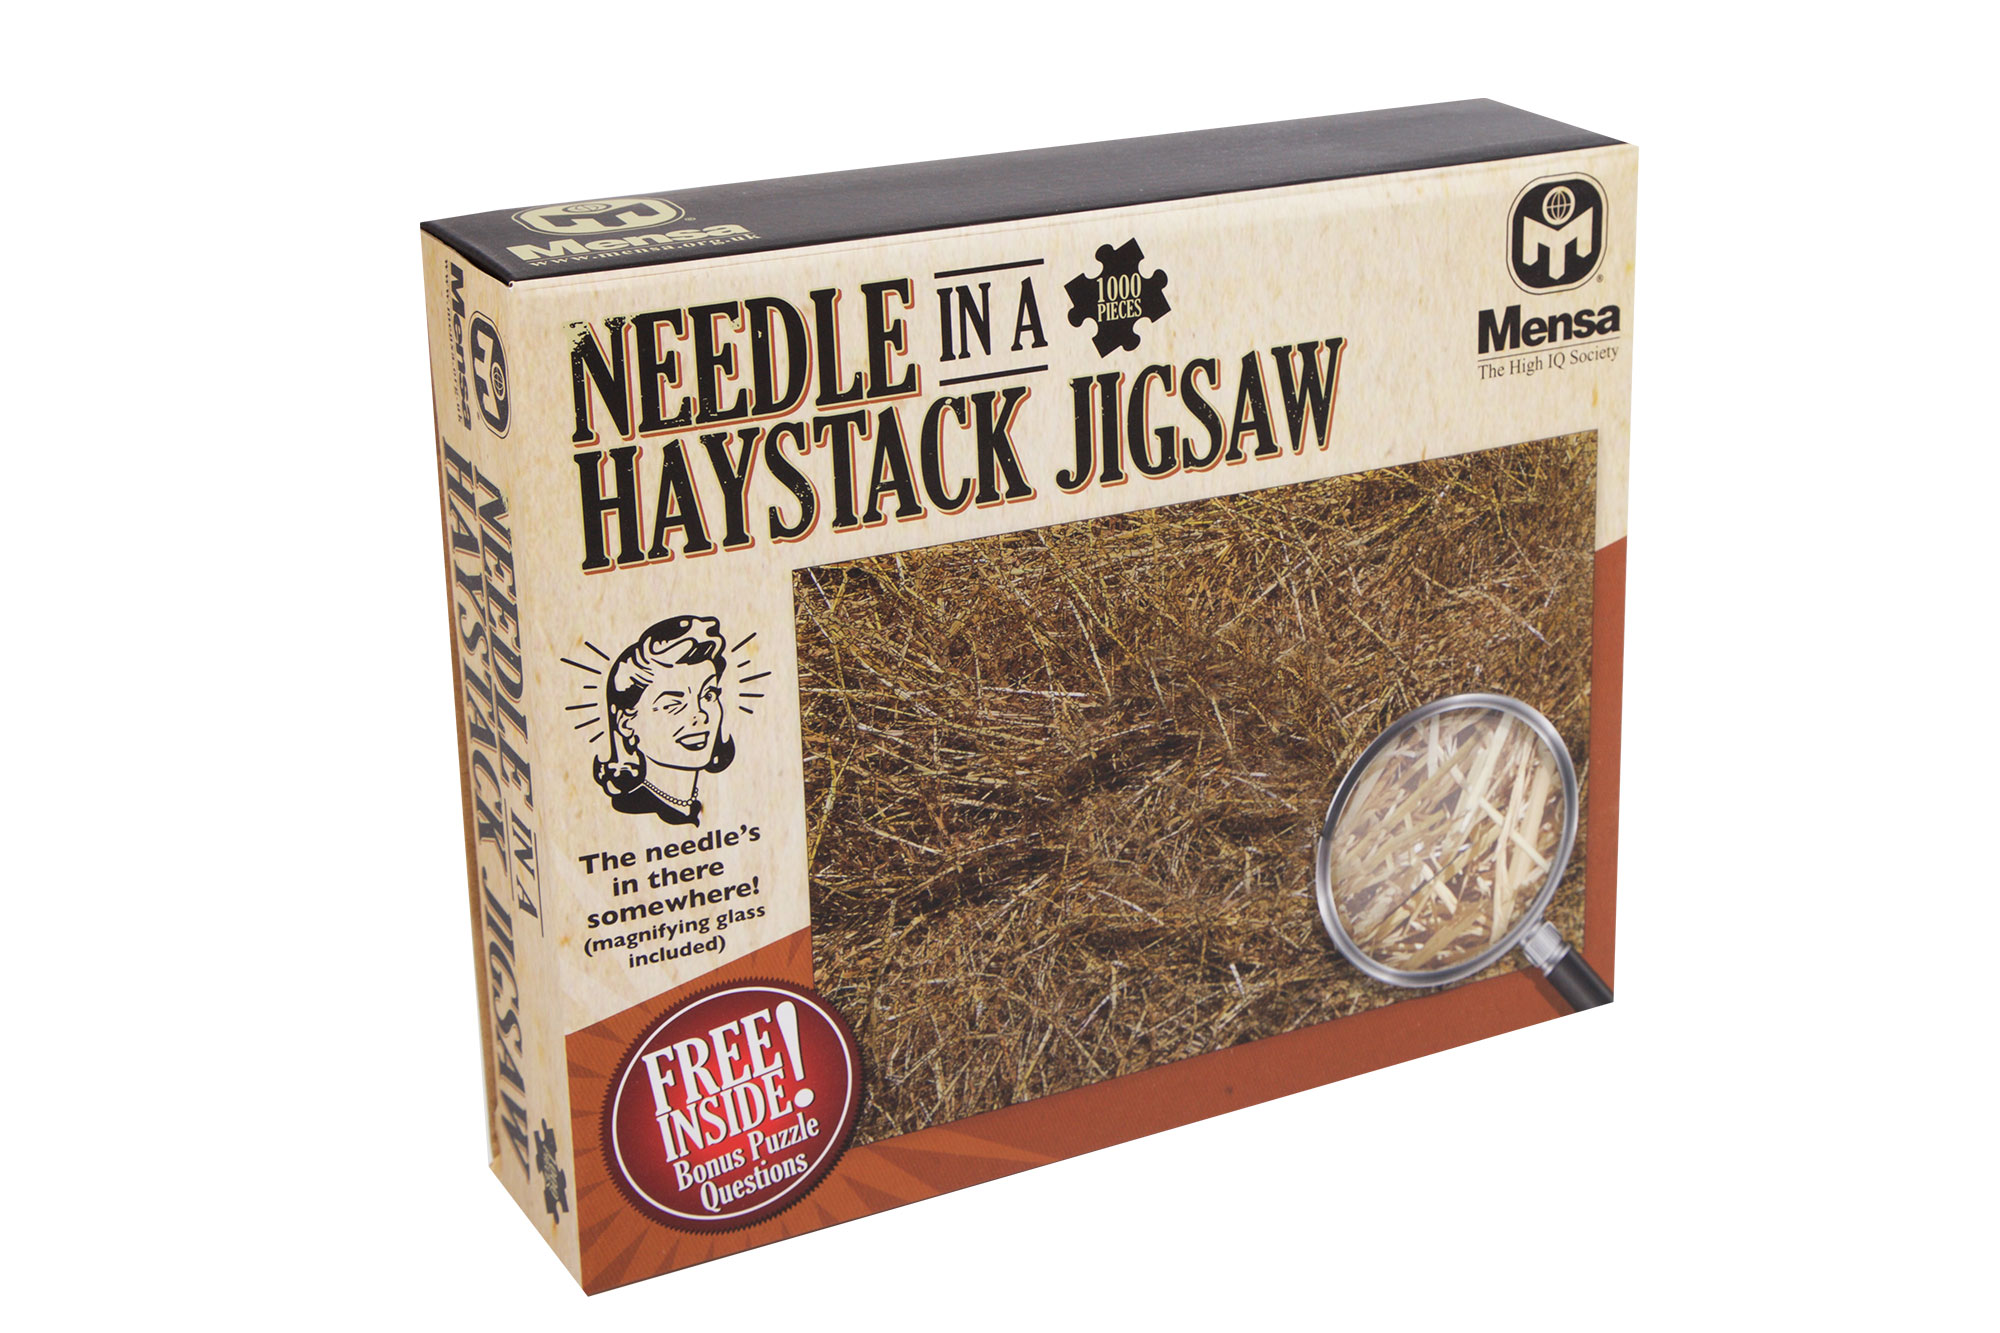 Gifts british mensa mensa needle in a haystack jigsaw puzzle 1betcityfo Images